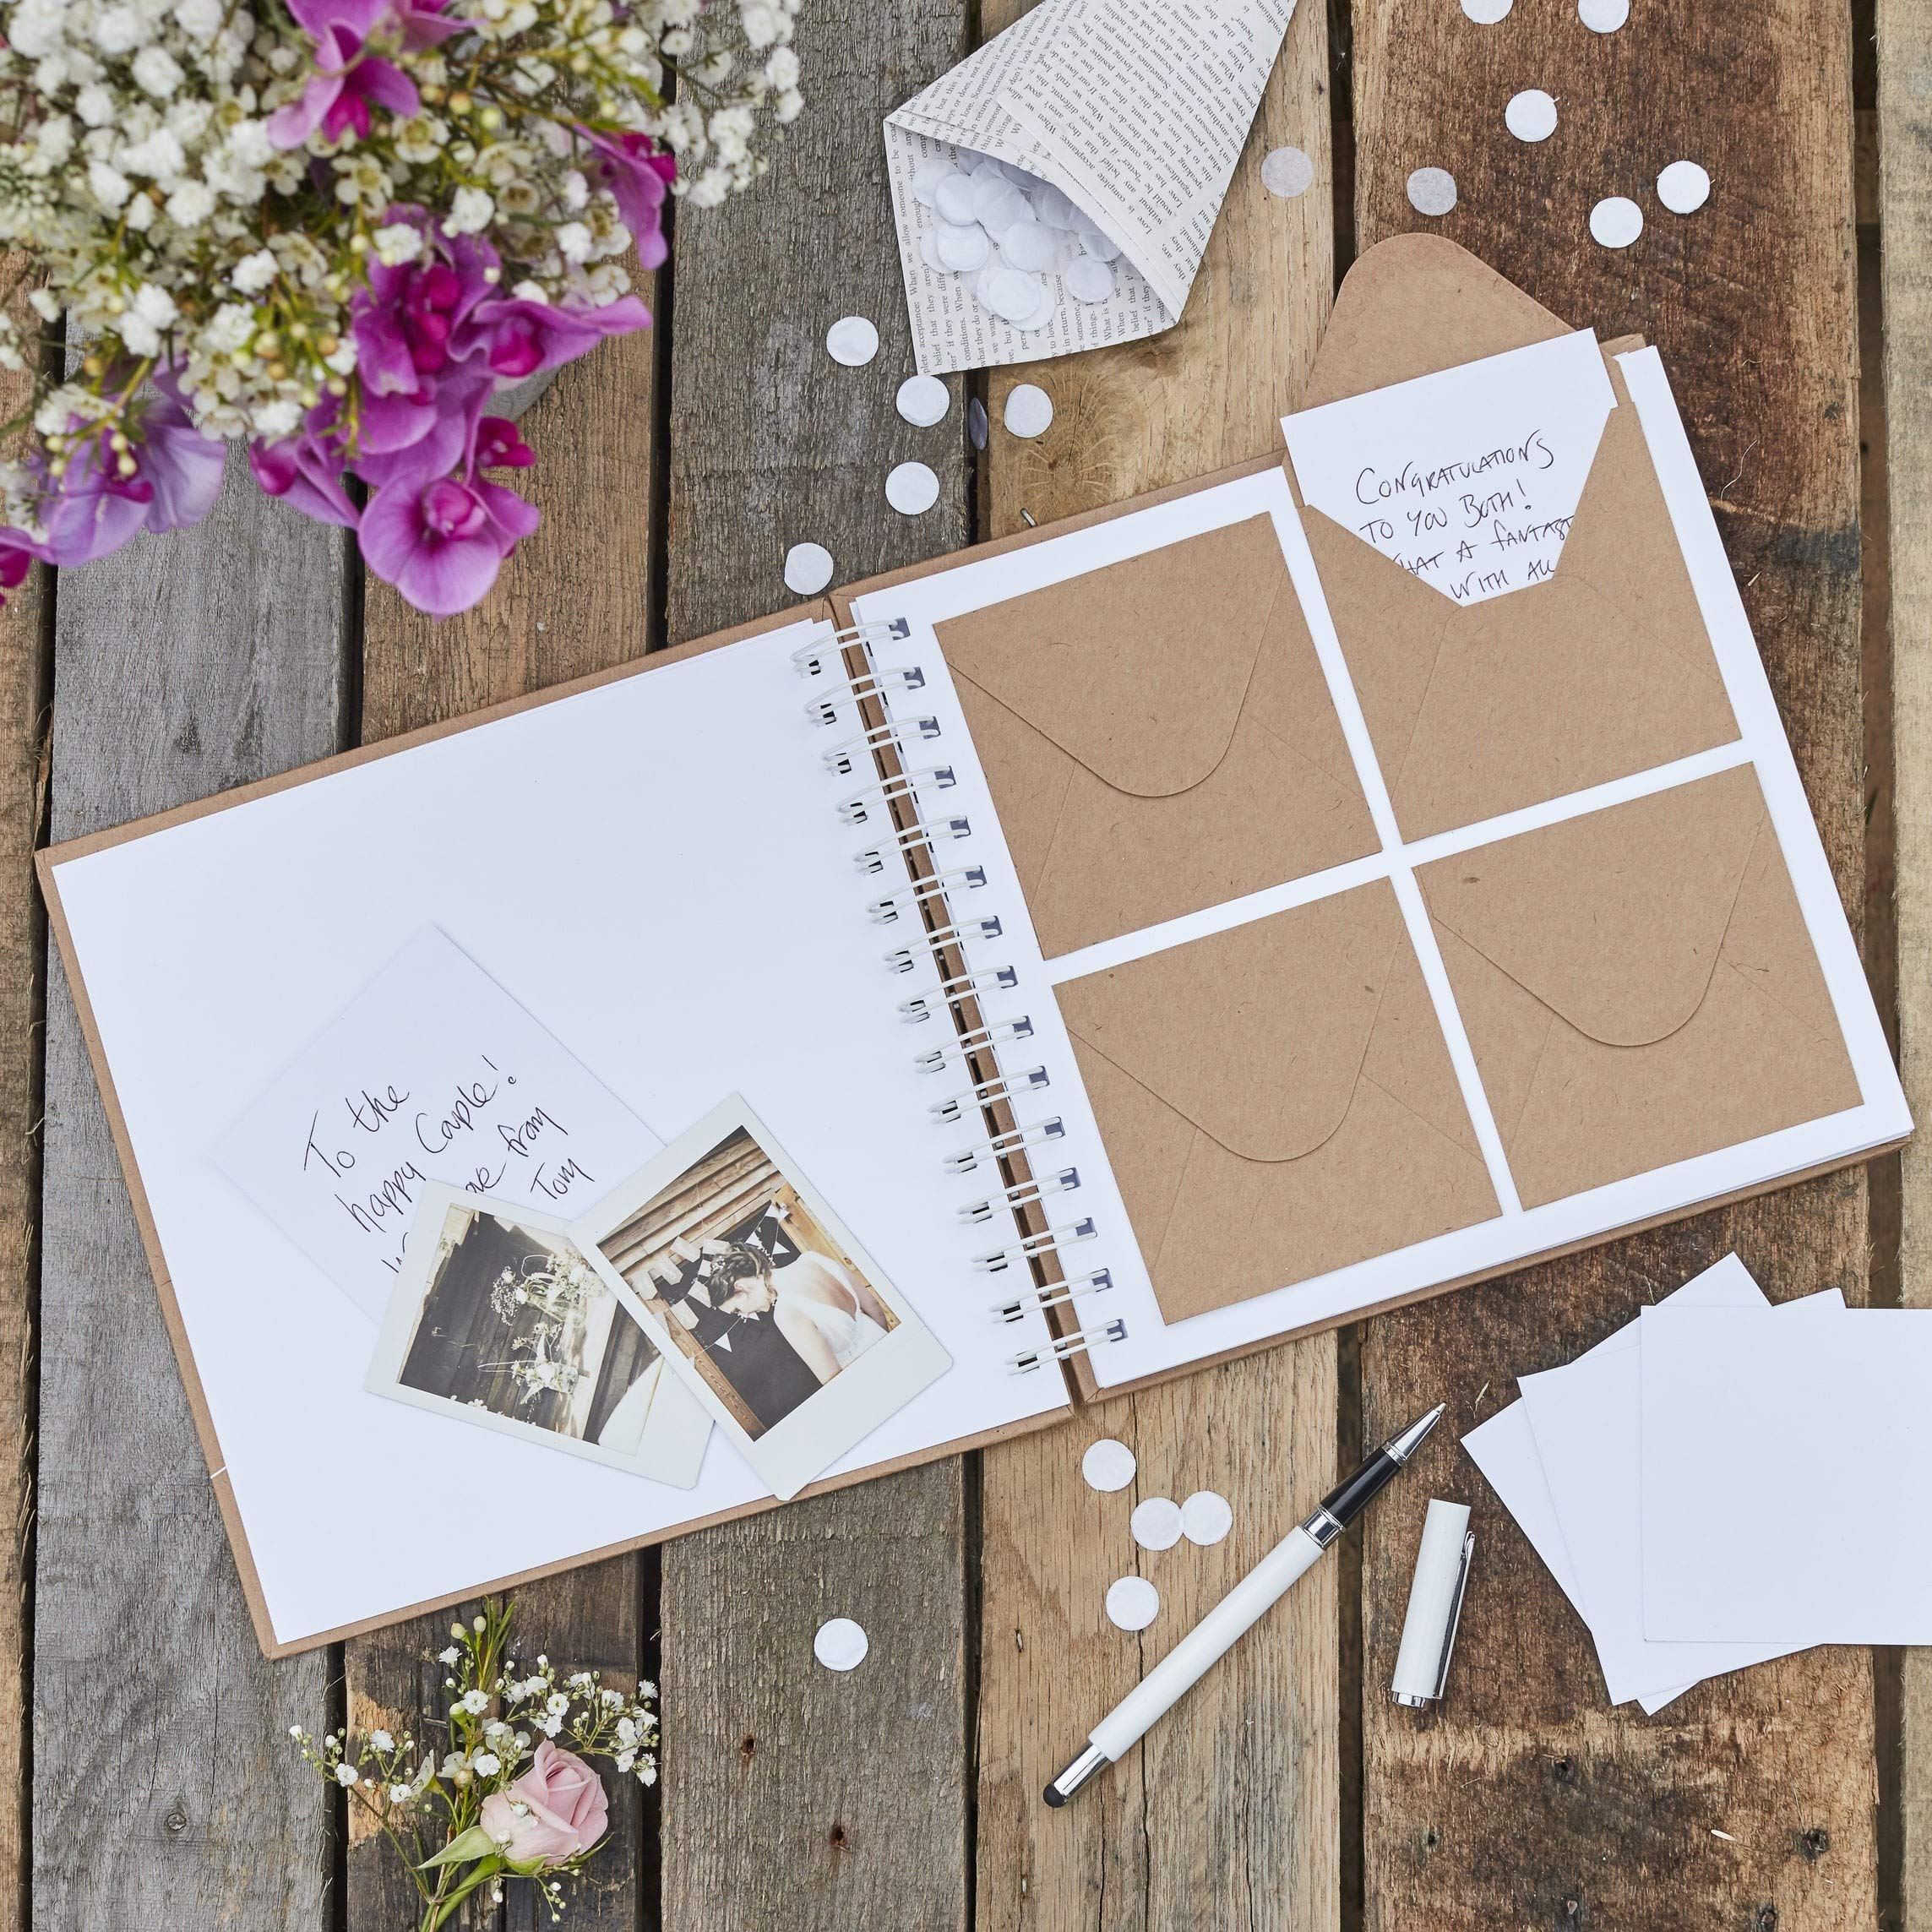 Ginger Ray Wedding Guest Book Ideas for Rustic Wedding Decorations Wedding Supplies 80 Envelopes & Note Cards 8'' x 8.25''